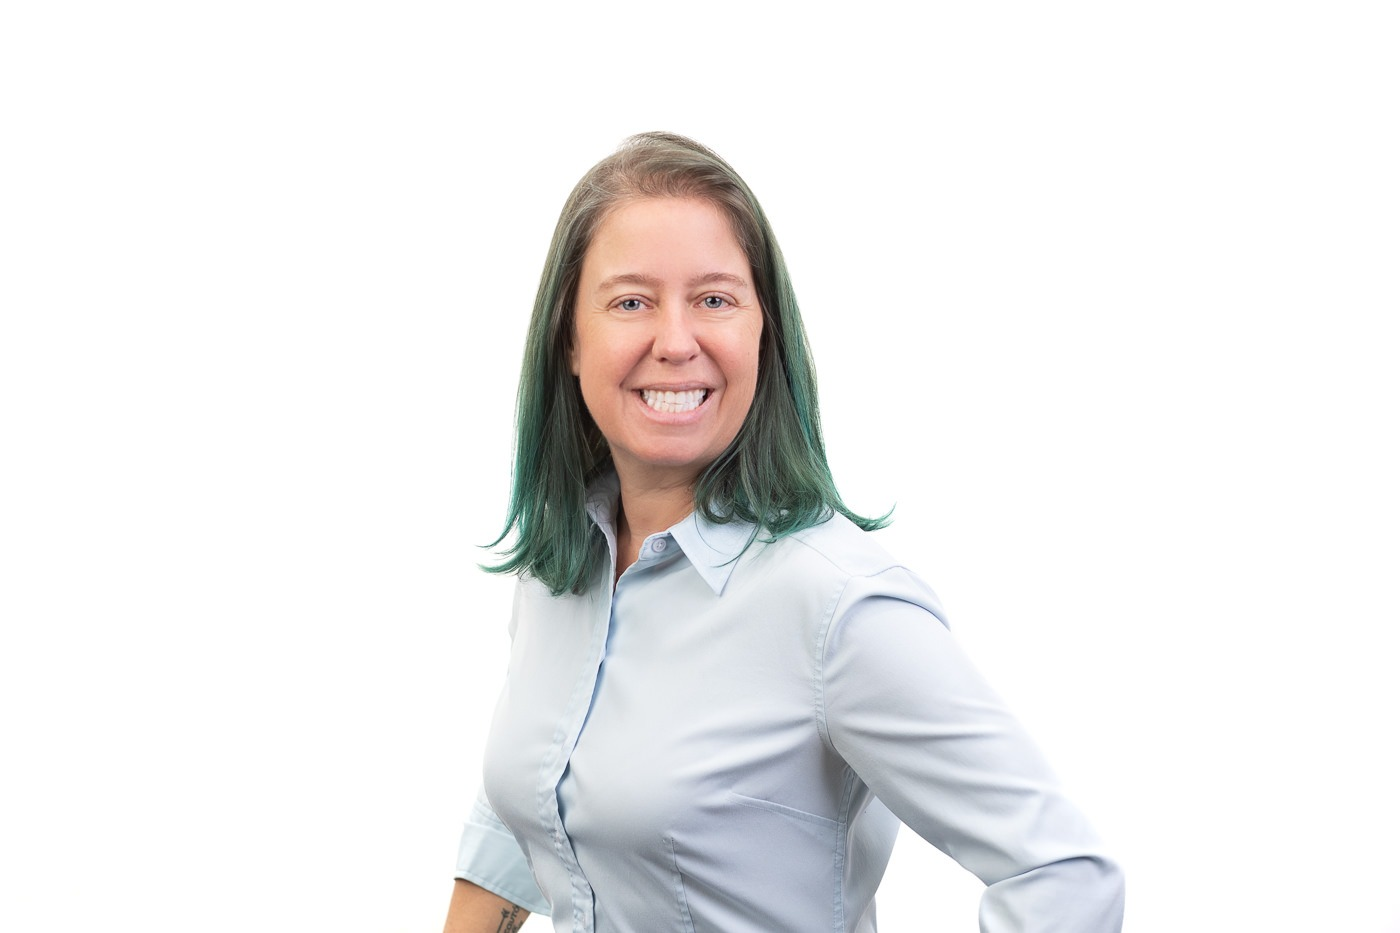 Smiling woman with teal hair and blue shirt in front of a white wall